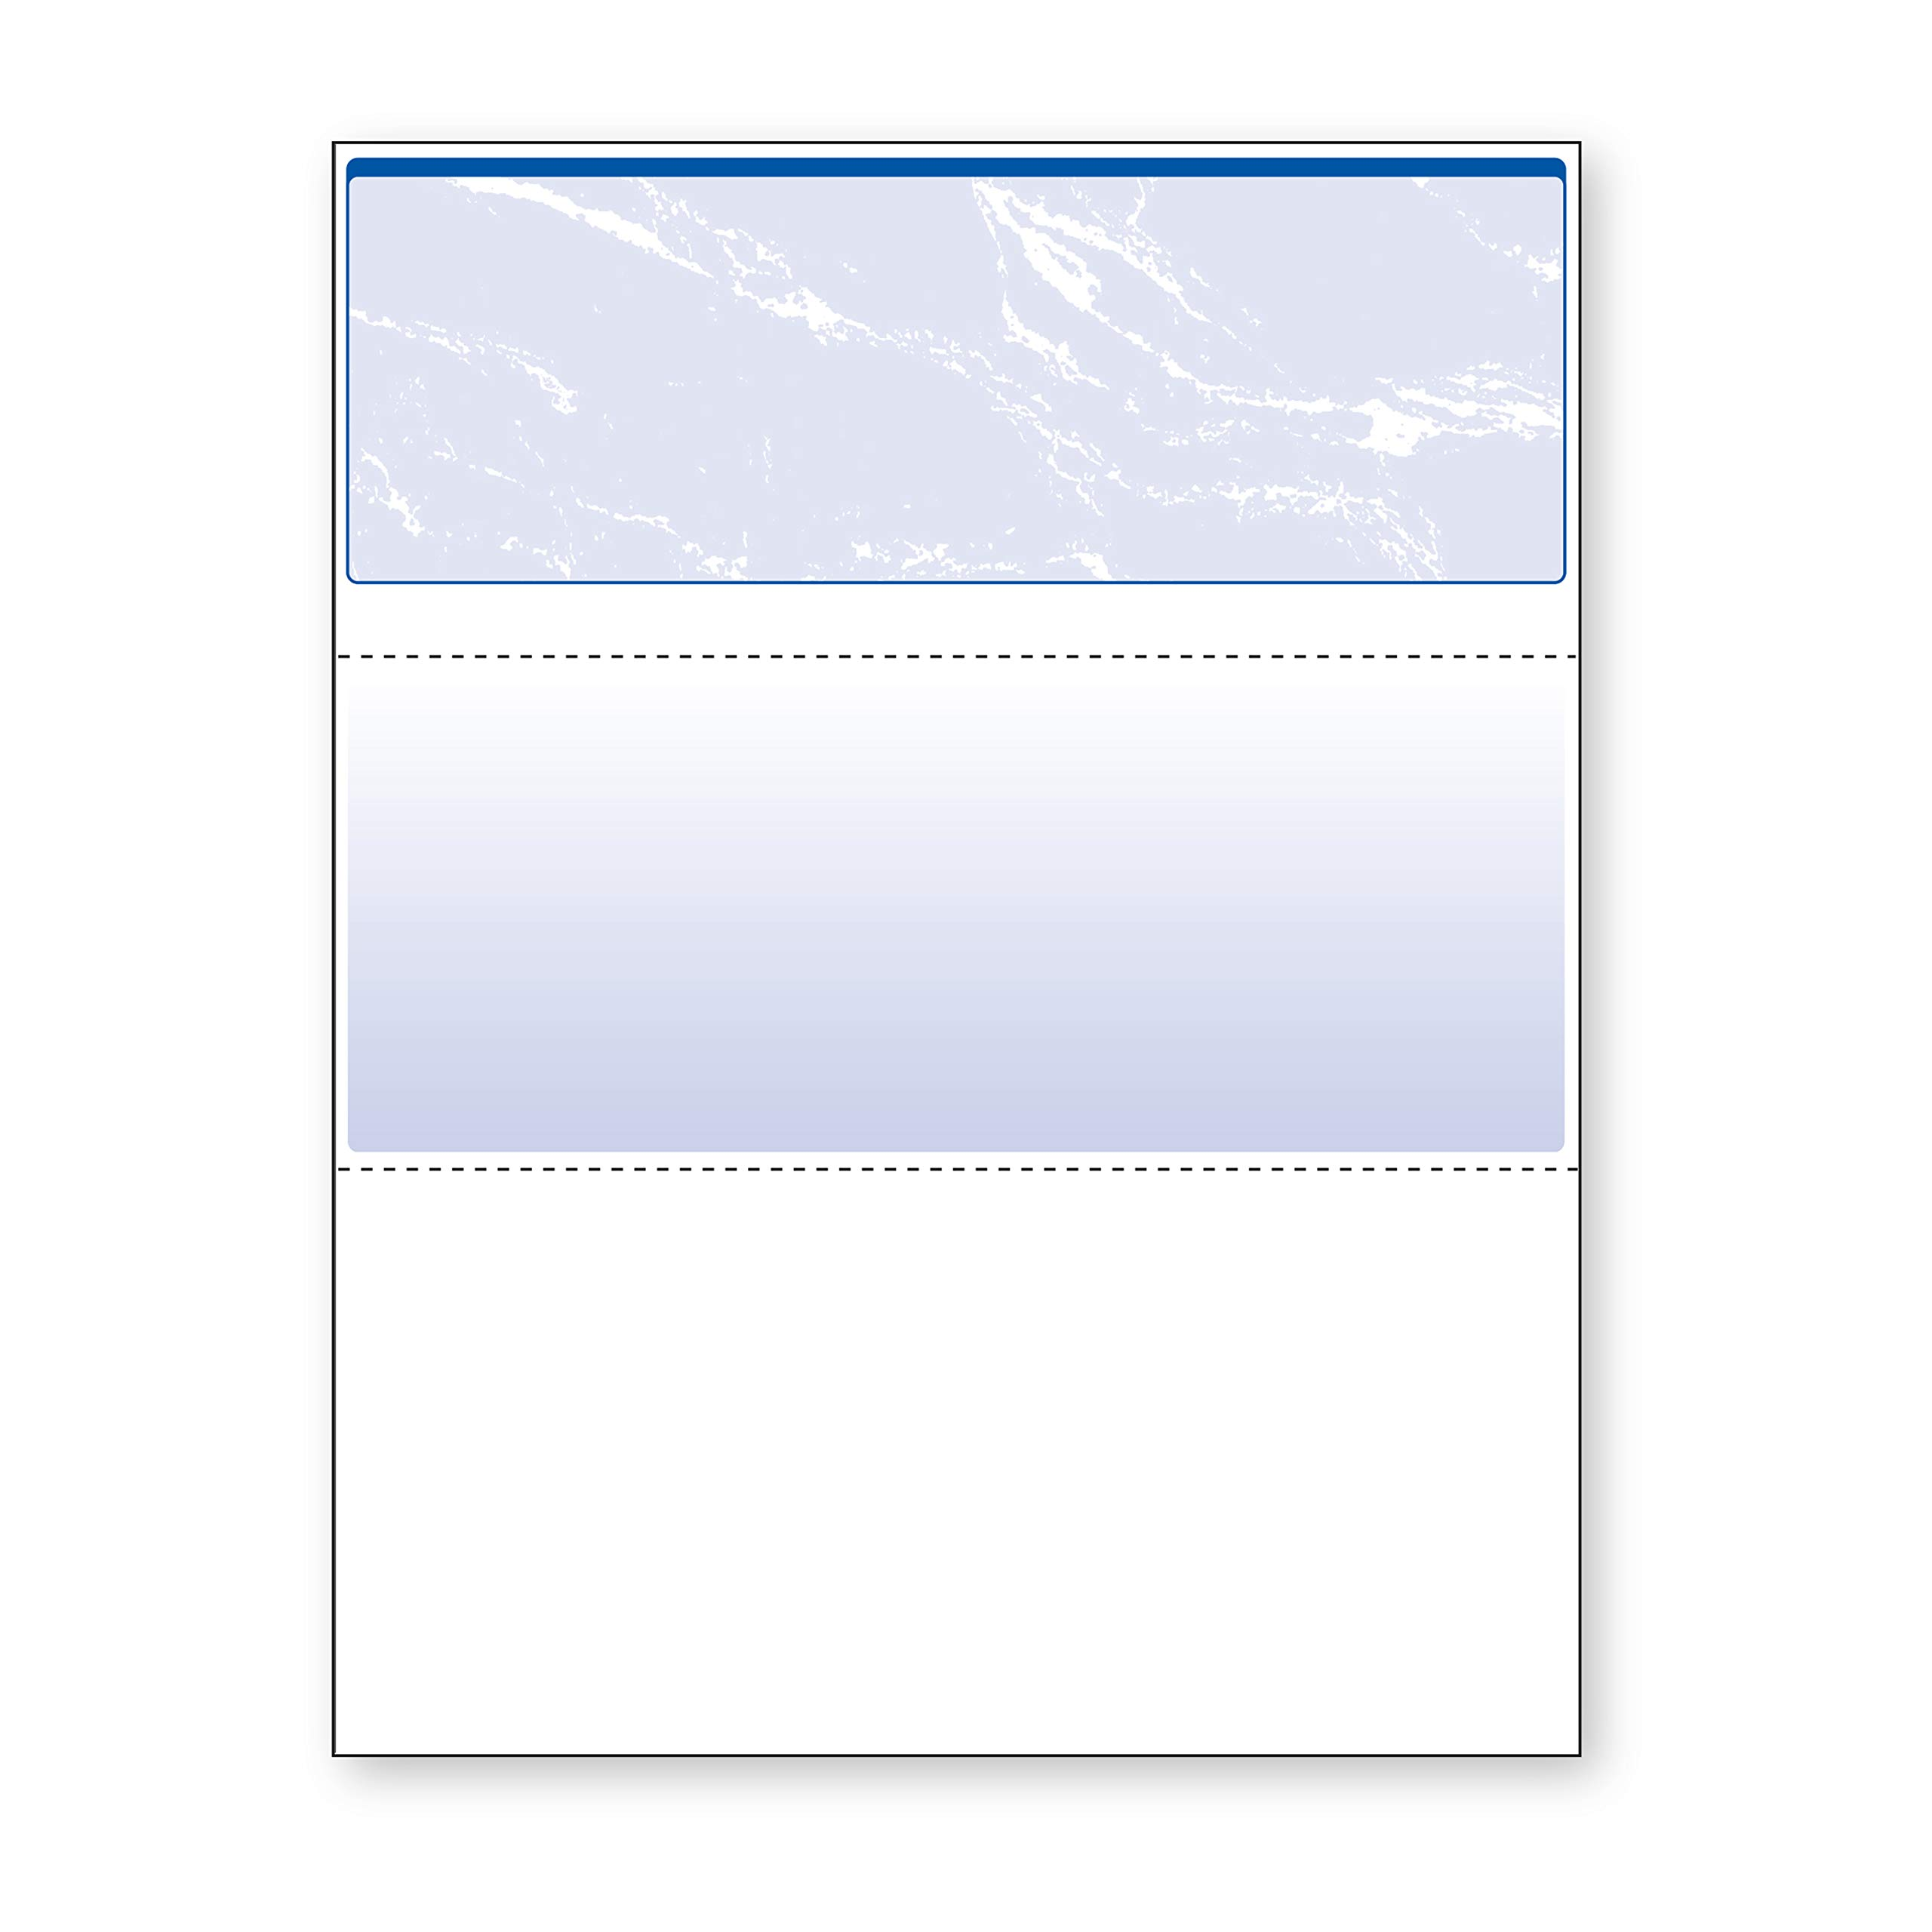 DocuGard Standard Blue Marble Top Check, 24 Pound, 8.5 x 11 Inches, 500 Sheets (04501) by DocuGard